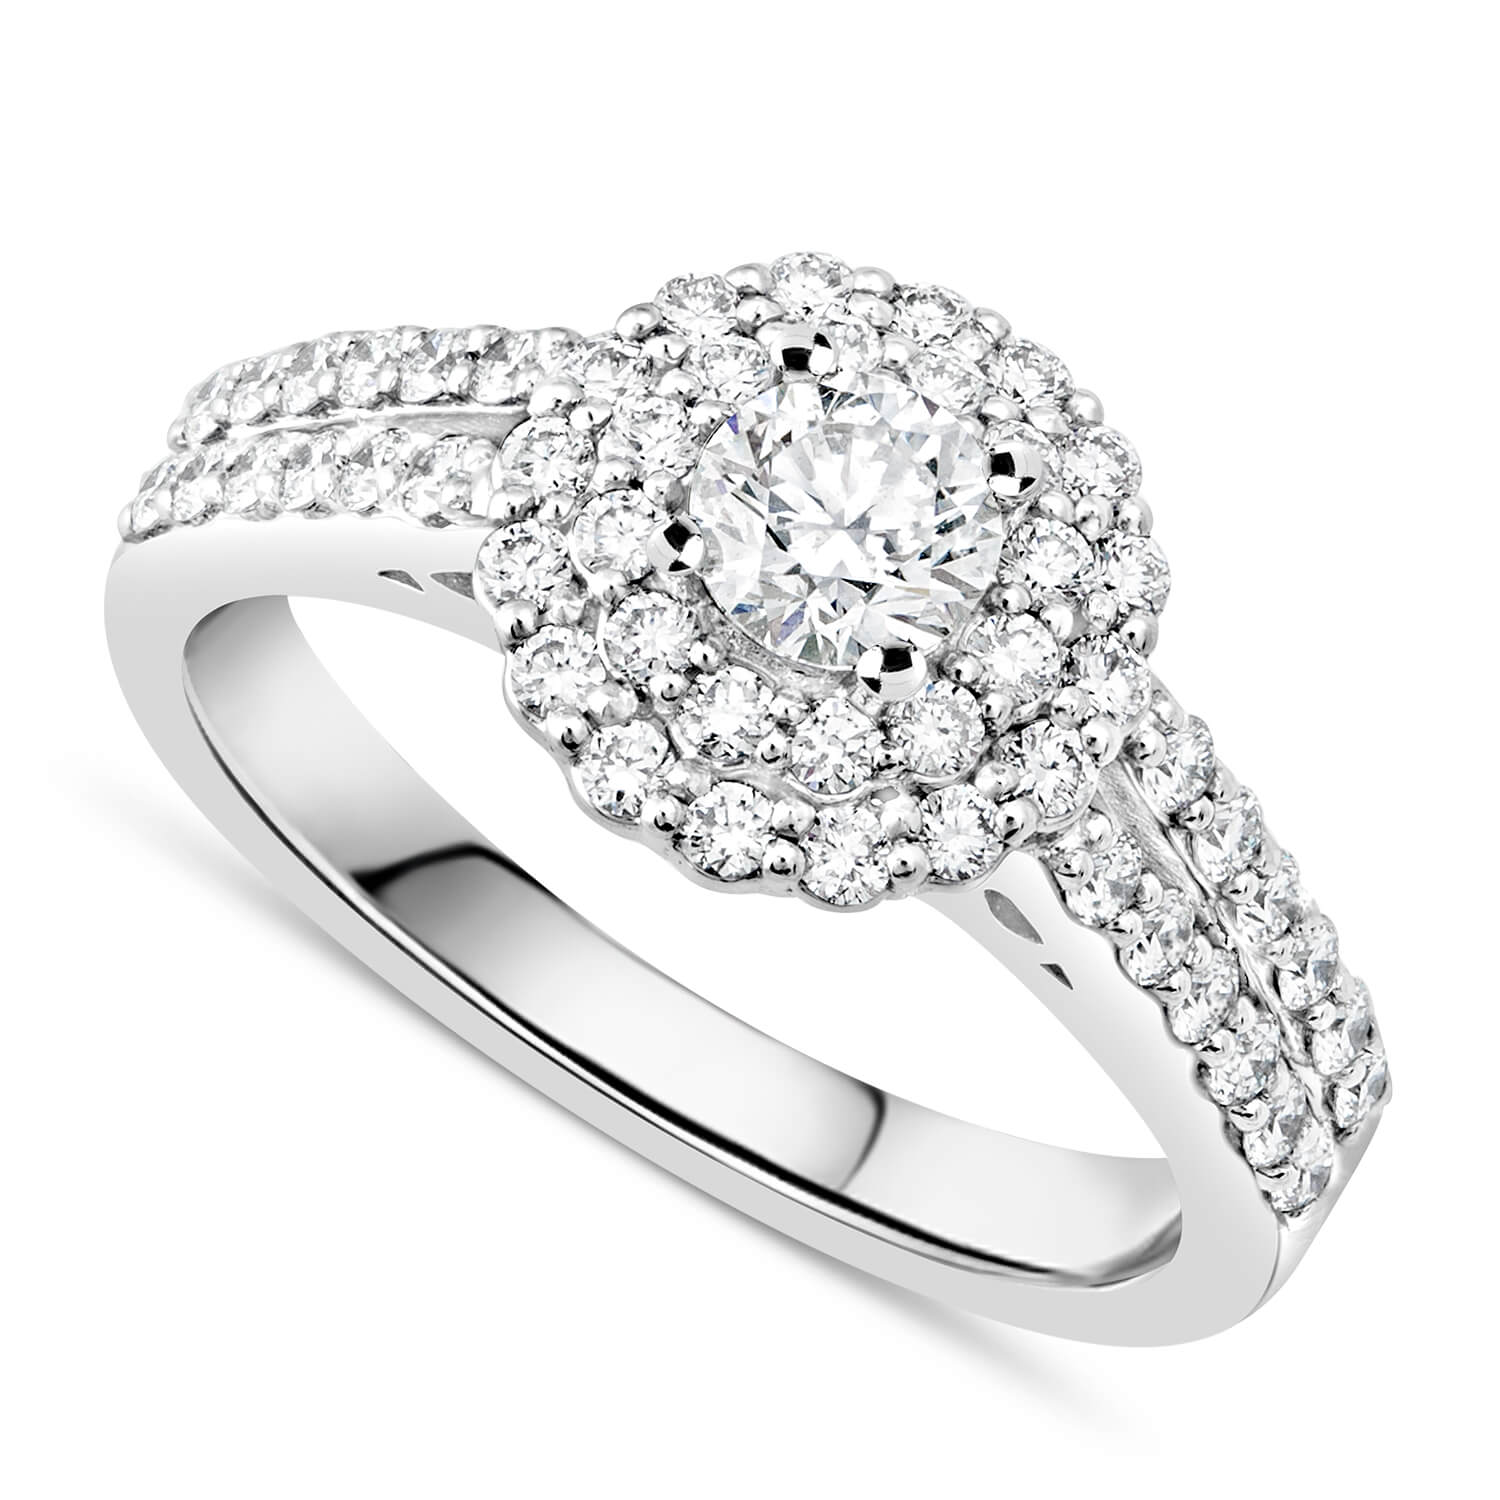 Ladies 18ct White Gold and Diamond Halo Engagement Ring